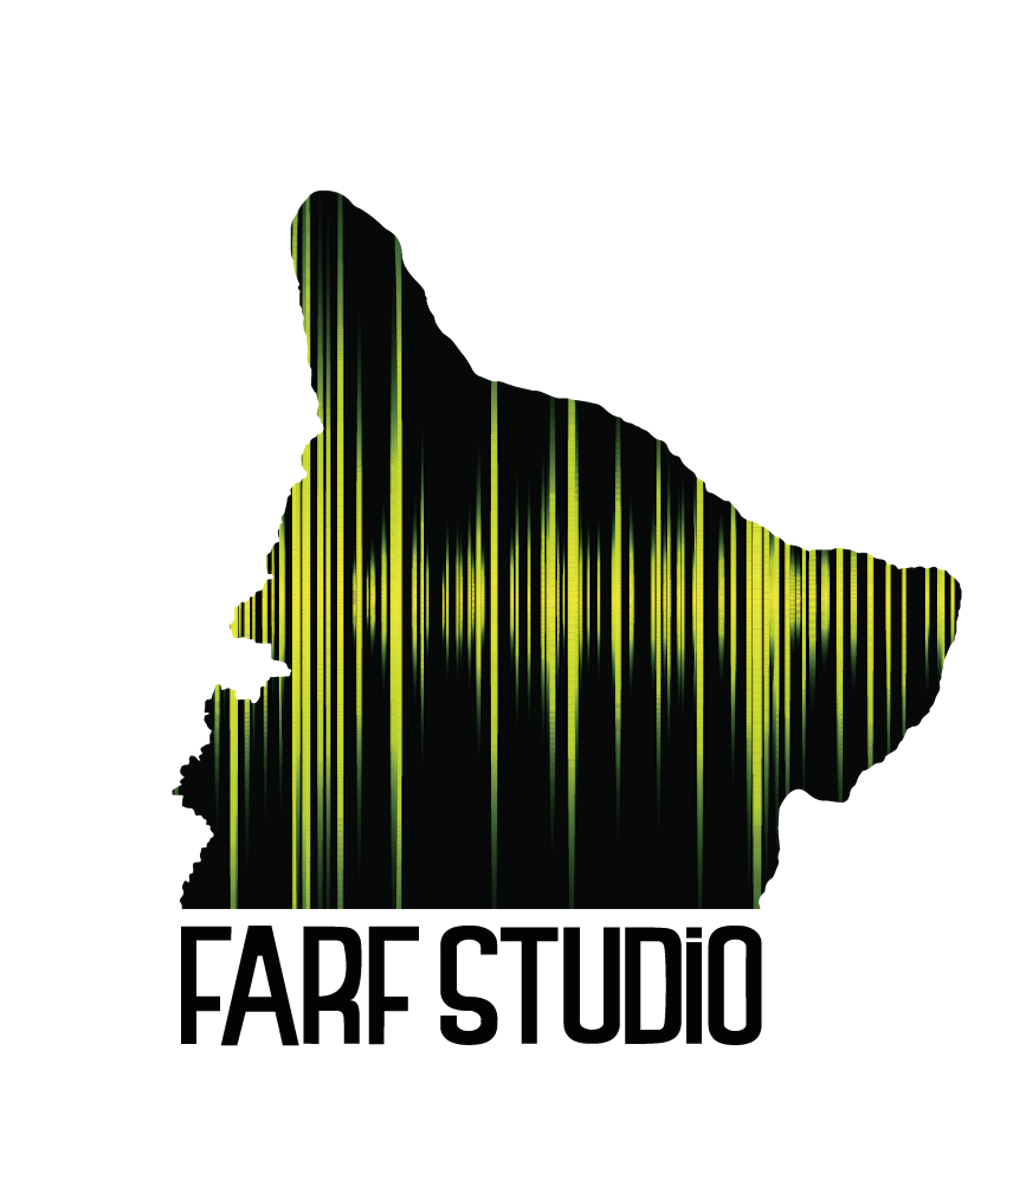 FarF StudiO | audio & music production